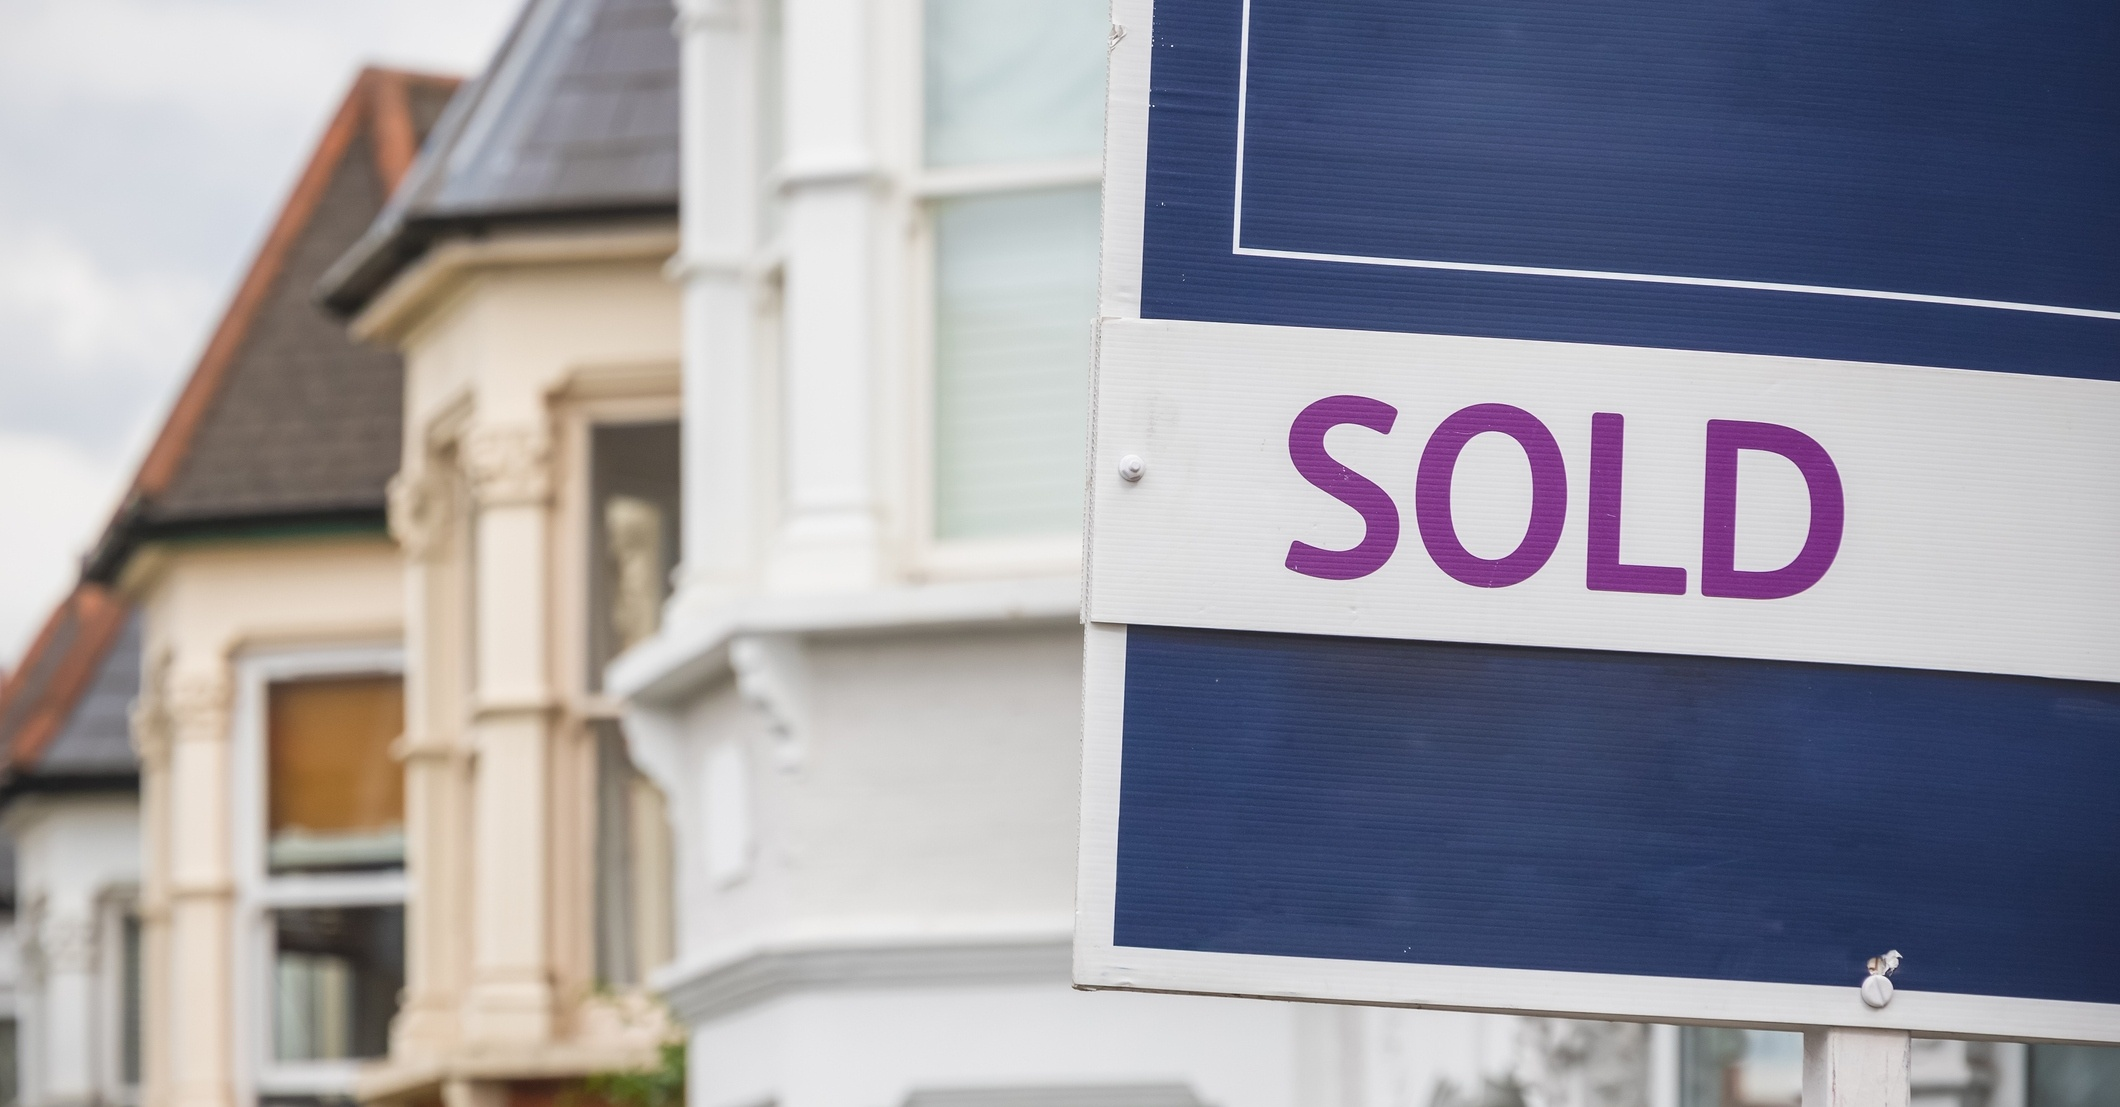 'House prices rose six times faster than nurse pay in last decade'